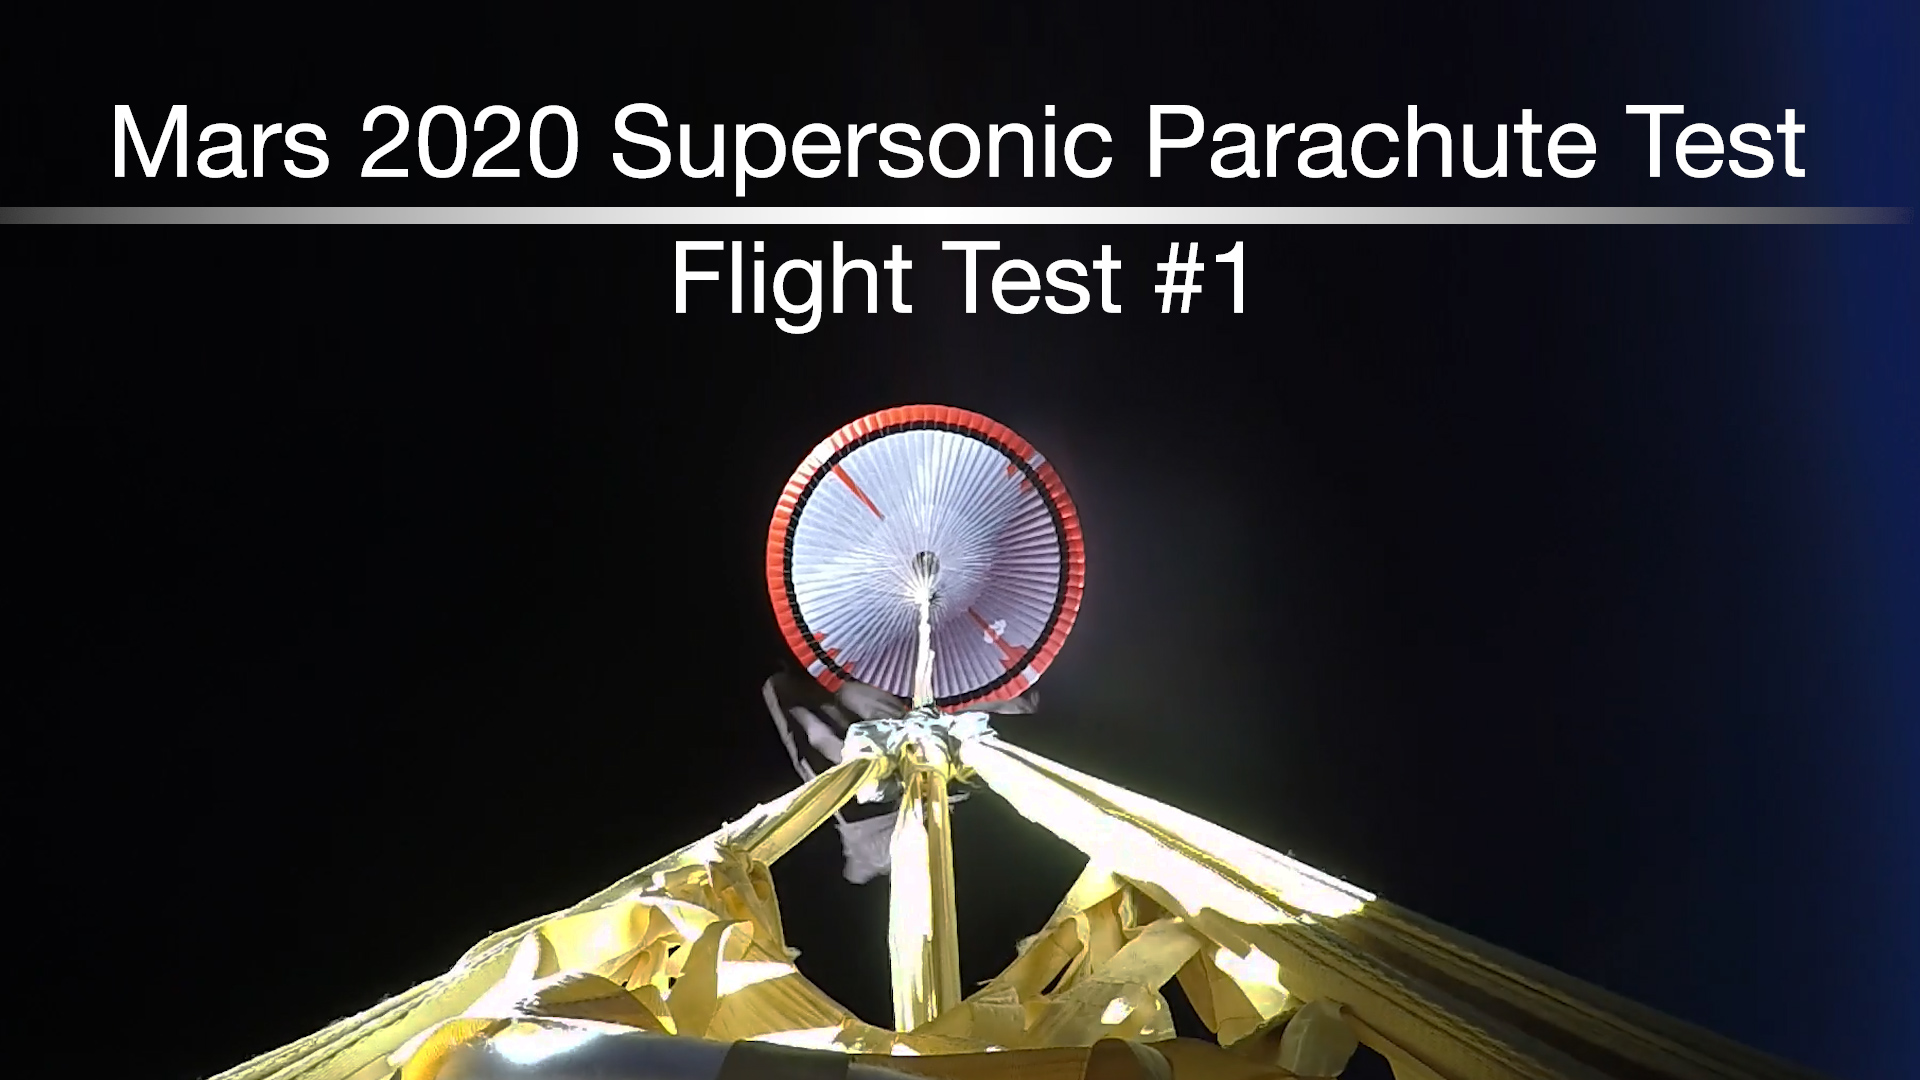 see the image 'NASA's Mars 2020 Supersonic Parachute: Test Flight #1'